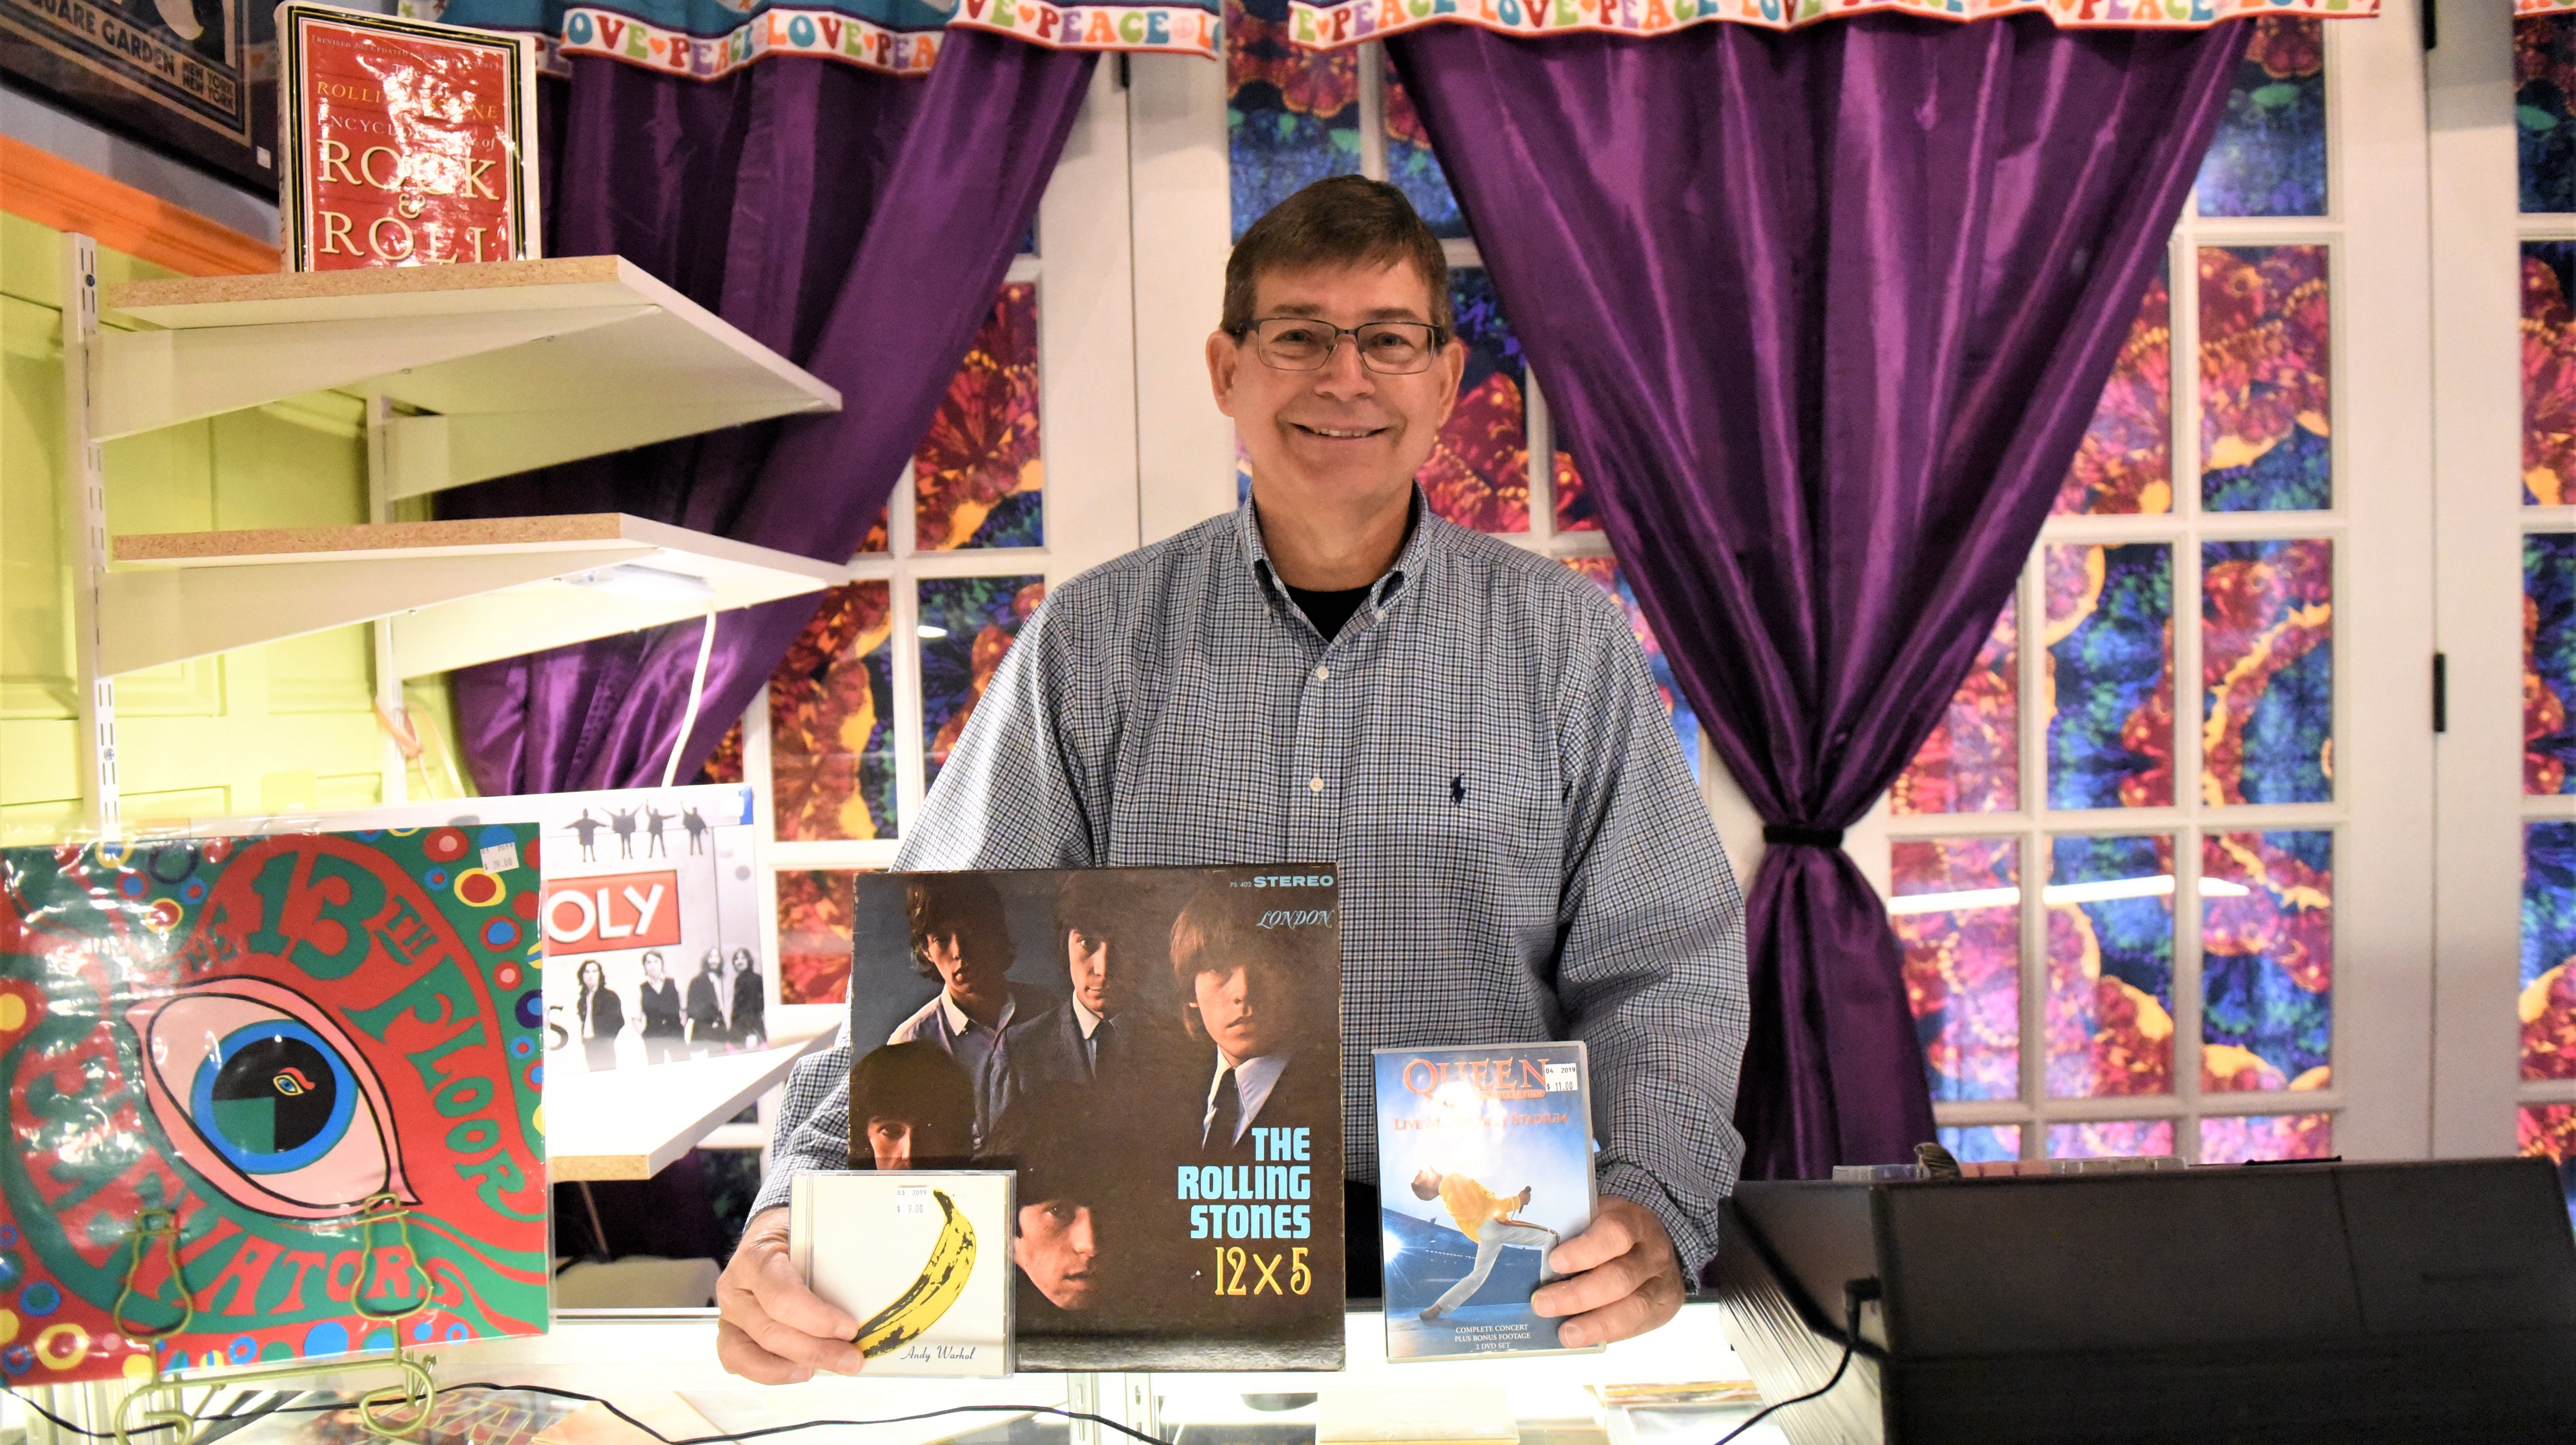 Hunting for vintage vinyl records? Head to Vinyl Visions in downtown Hanover